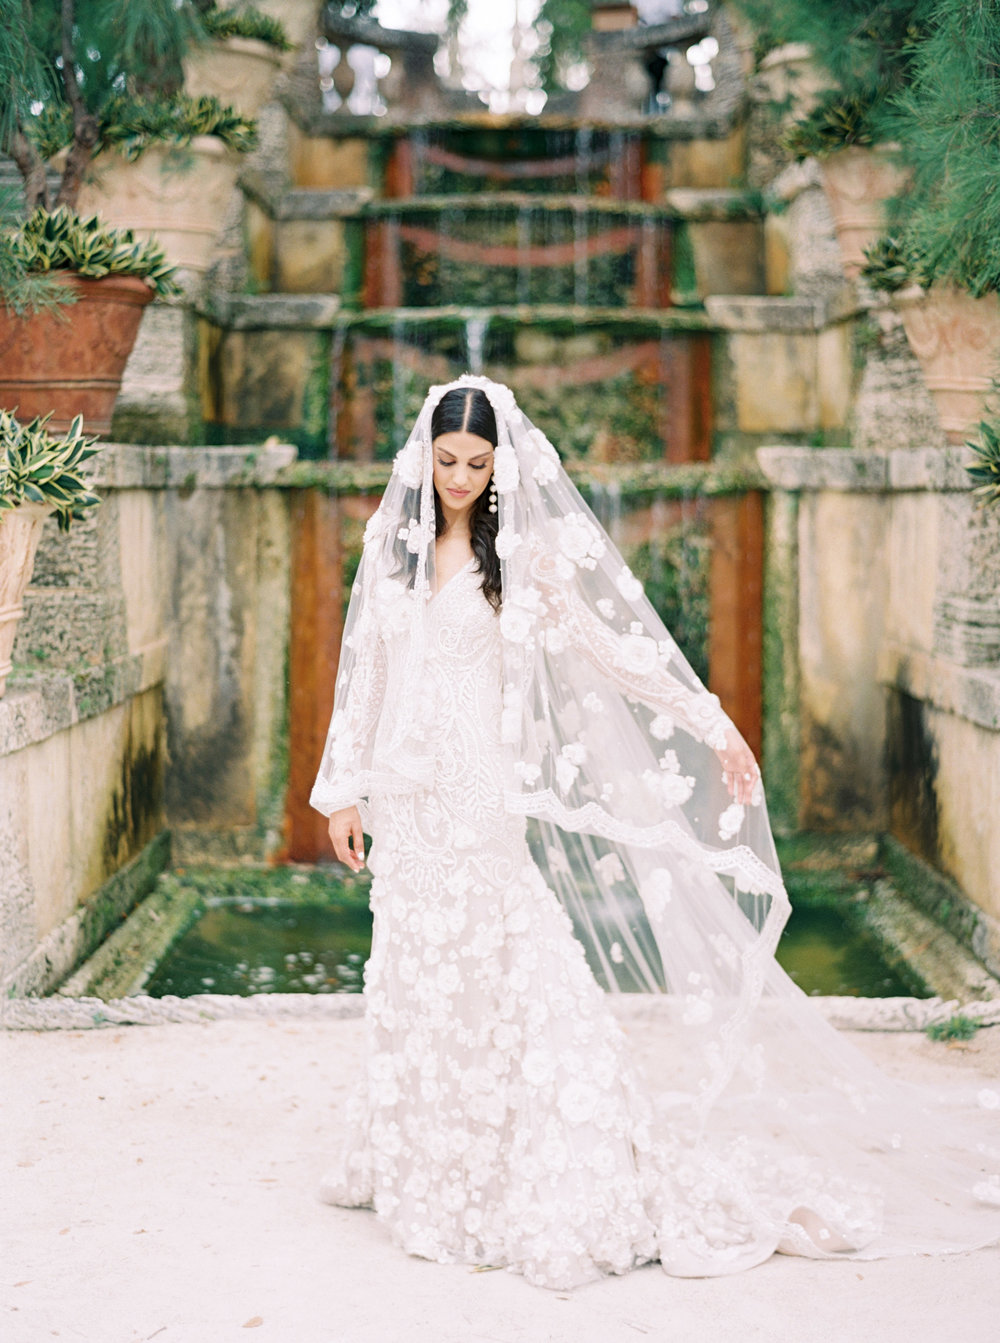 vizcaya-miami-destination-film-wedding-photographer-4431_13.jpg